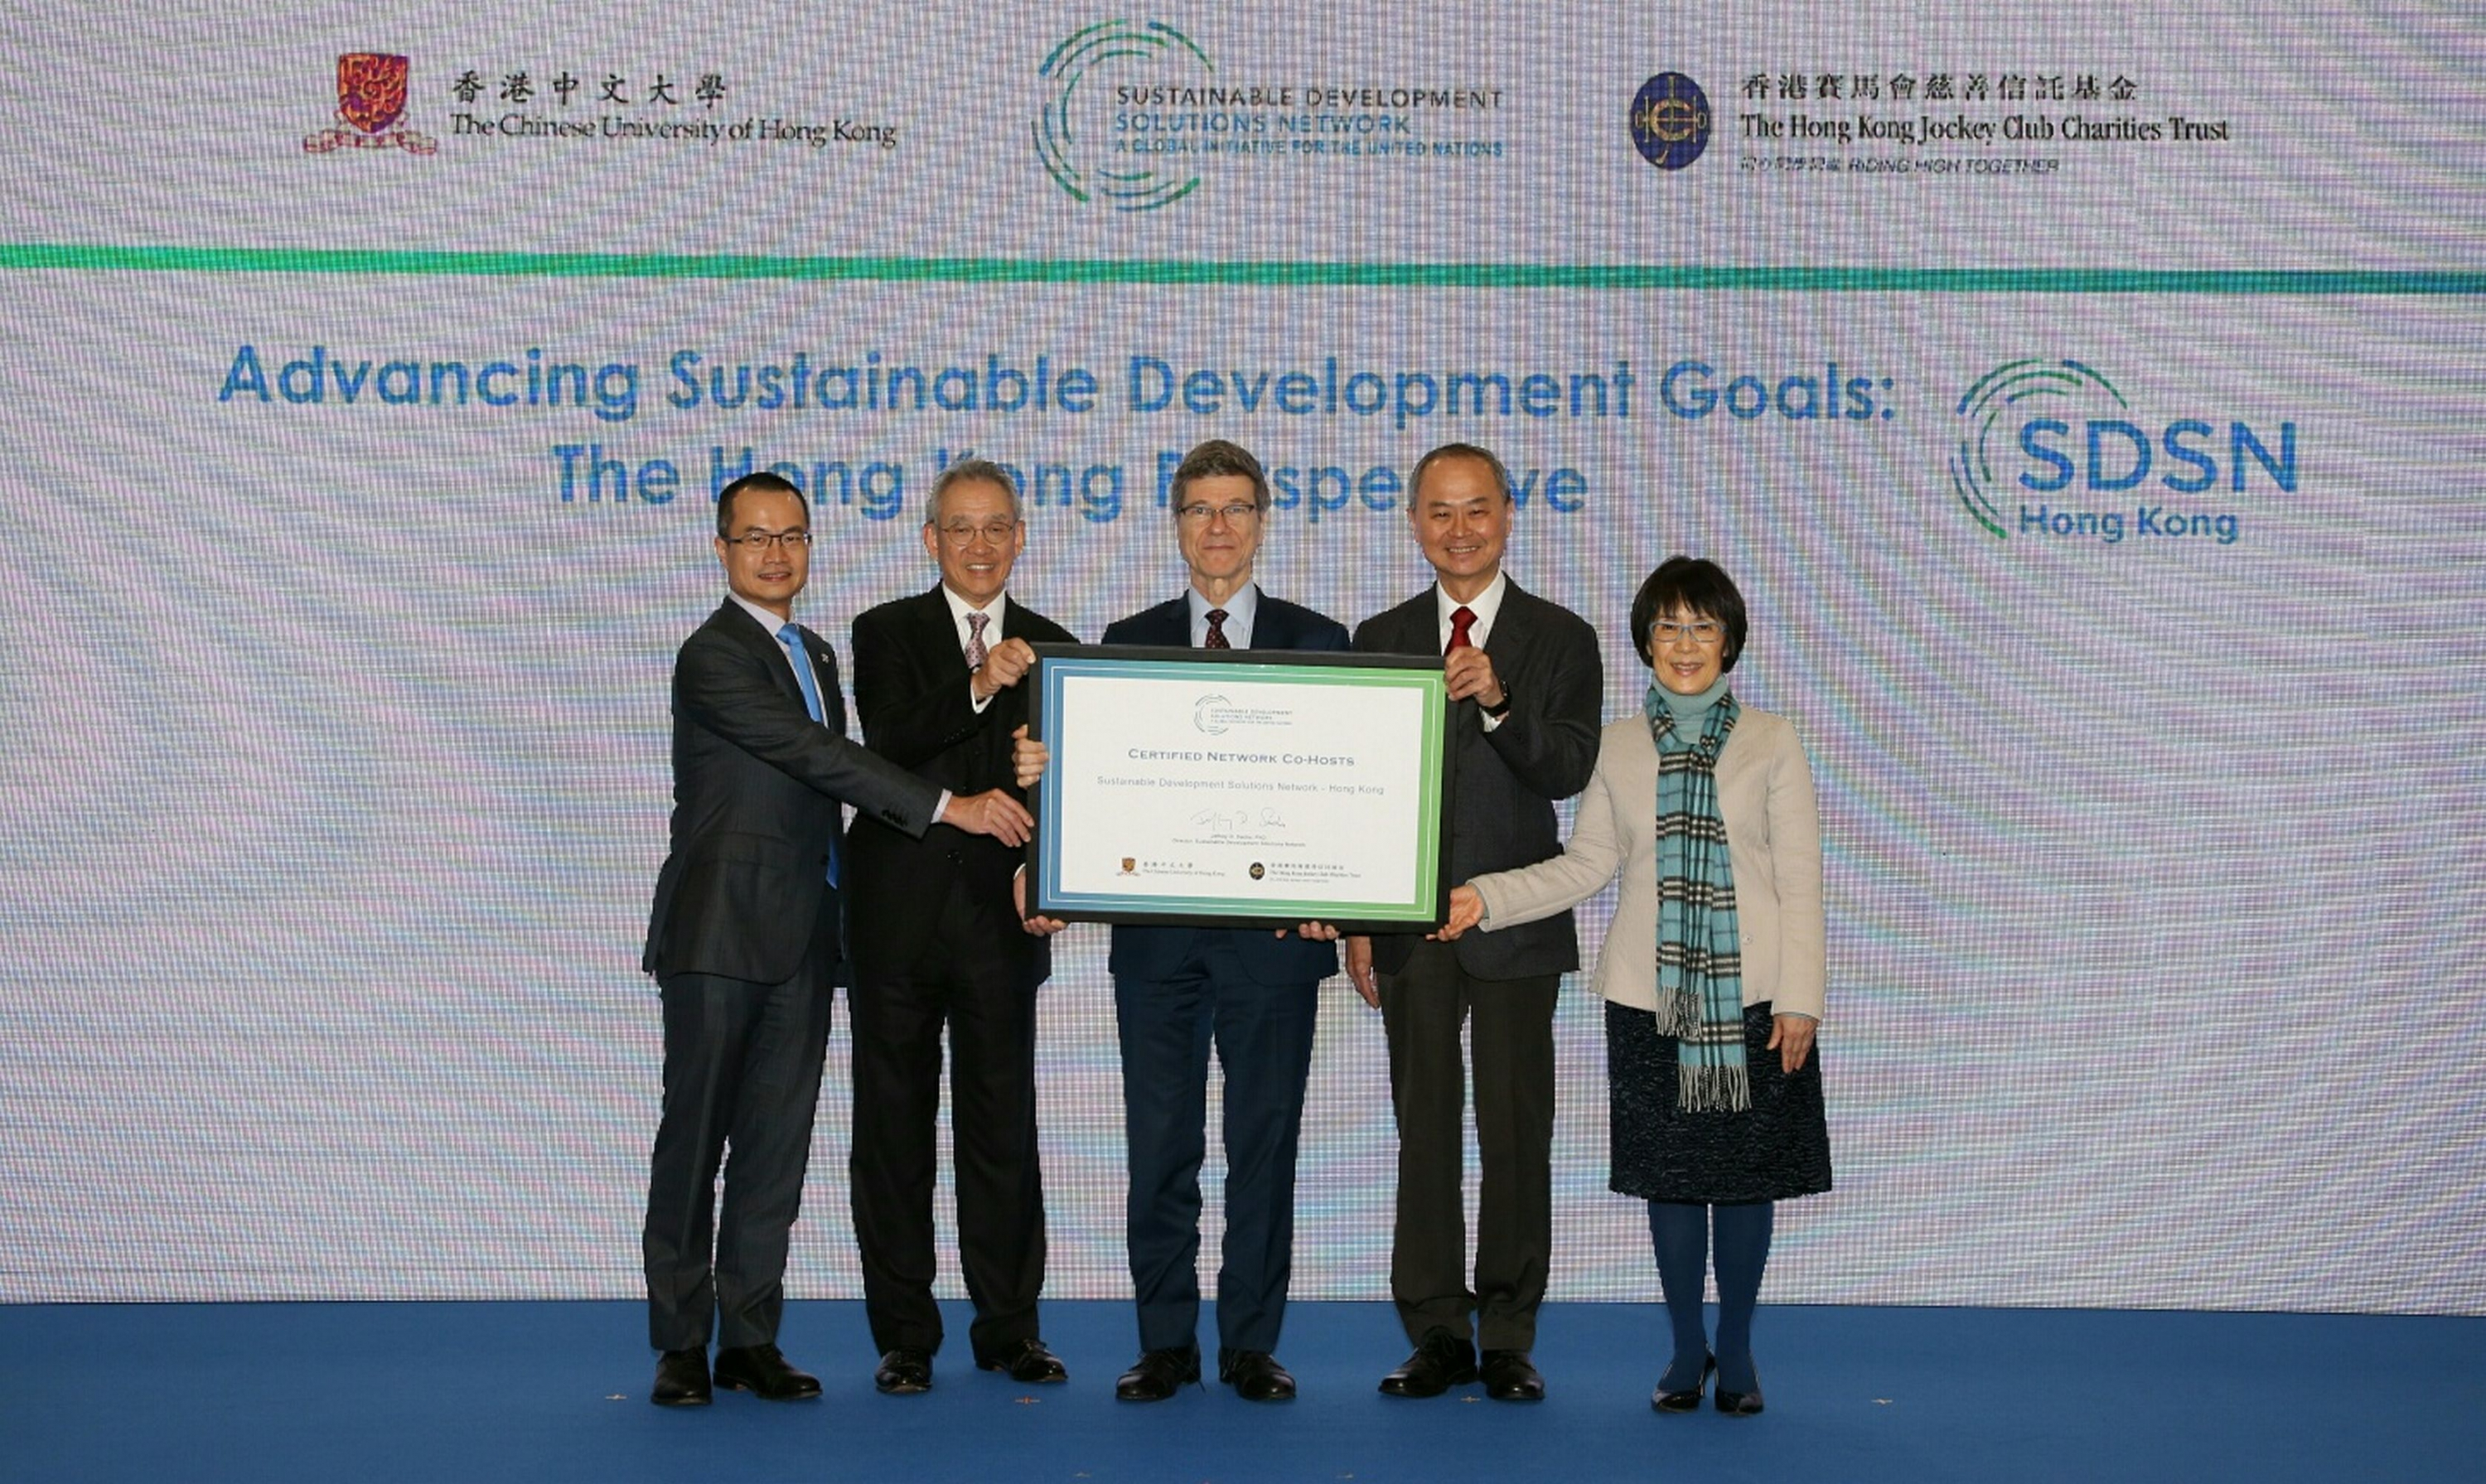 Director of the UN SDSN Professor Jeffrey Sachs (centre) presents SDSN Hong Kong Appointment Certificate to Deputy Chairman of The Hong Kong Jockey Club Mr Anthony W K Chow (2nd left), Pro-Vice-Chancellor of CUHK Professor Fok Tai-fai (2nd right), Executive Director, Charities and Community of The Hong Kong Jockey Club Mr Leong Cheung (1st left) and Pro-Vice-Chancellor of CUHK Professor Fanny Cheung (1st right).